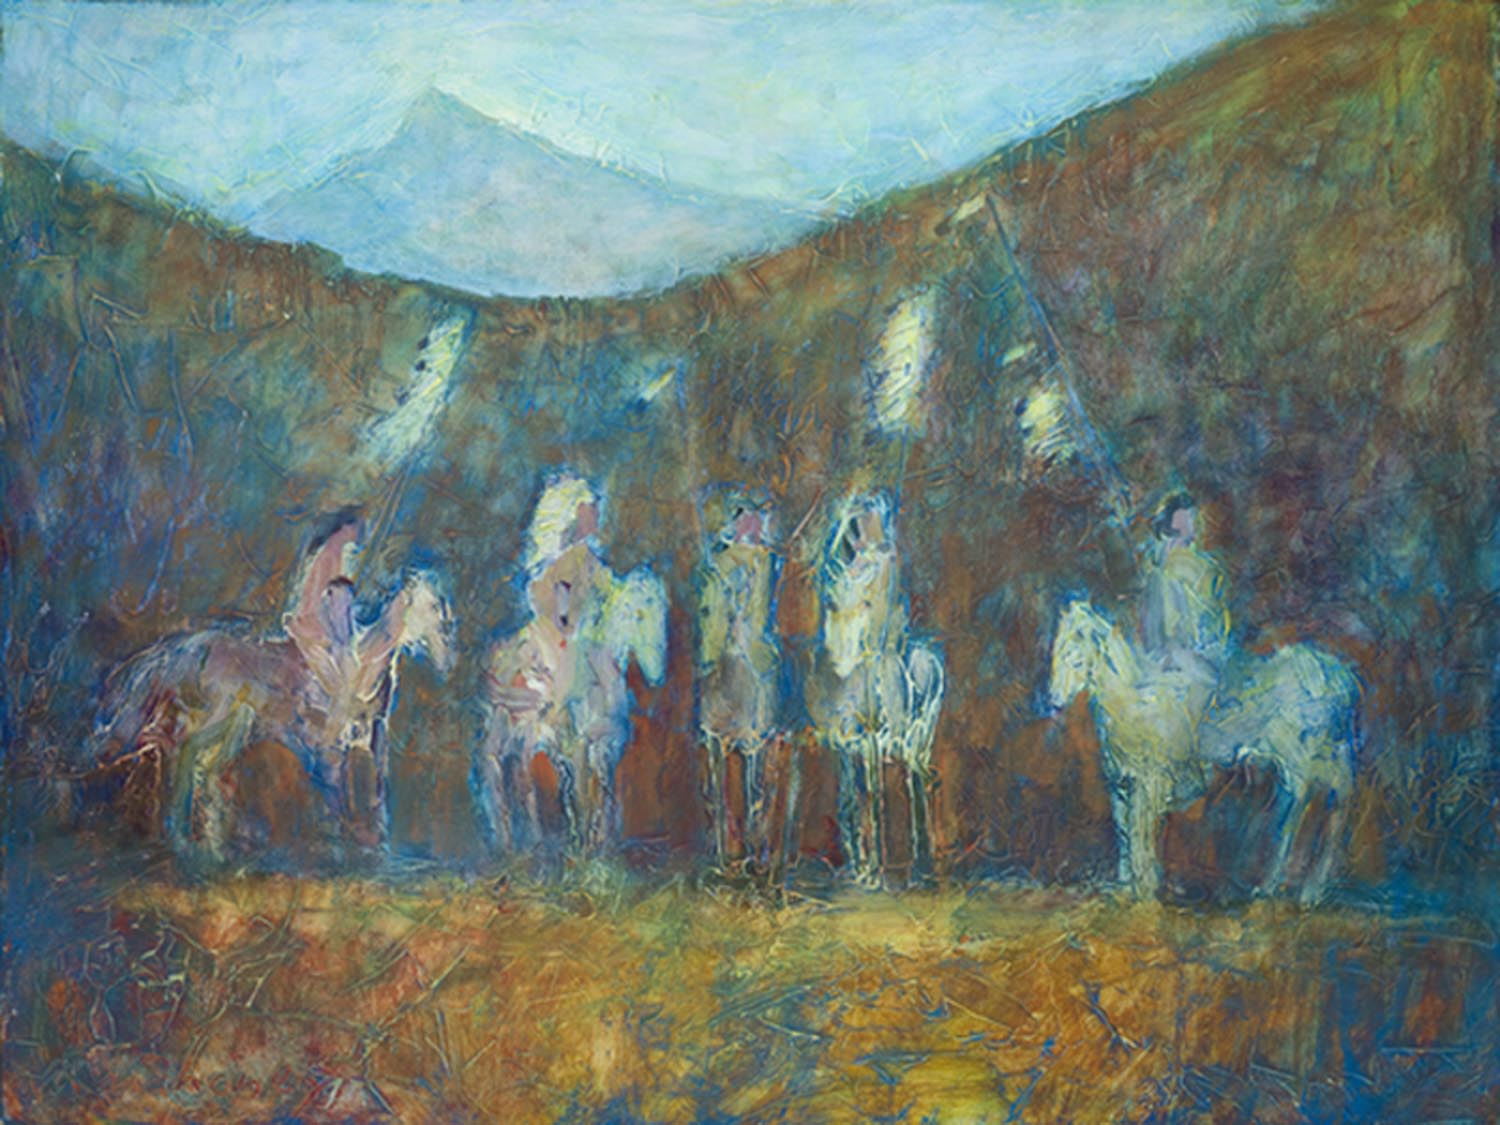 Blue Mountain Riders 30x40.jpg